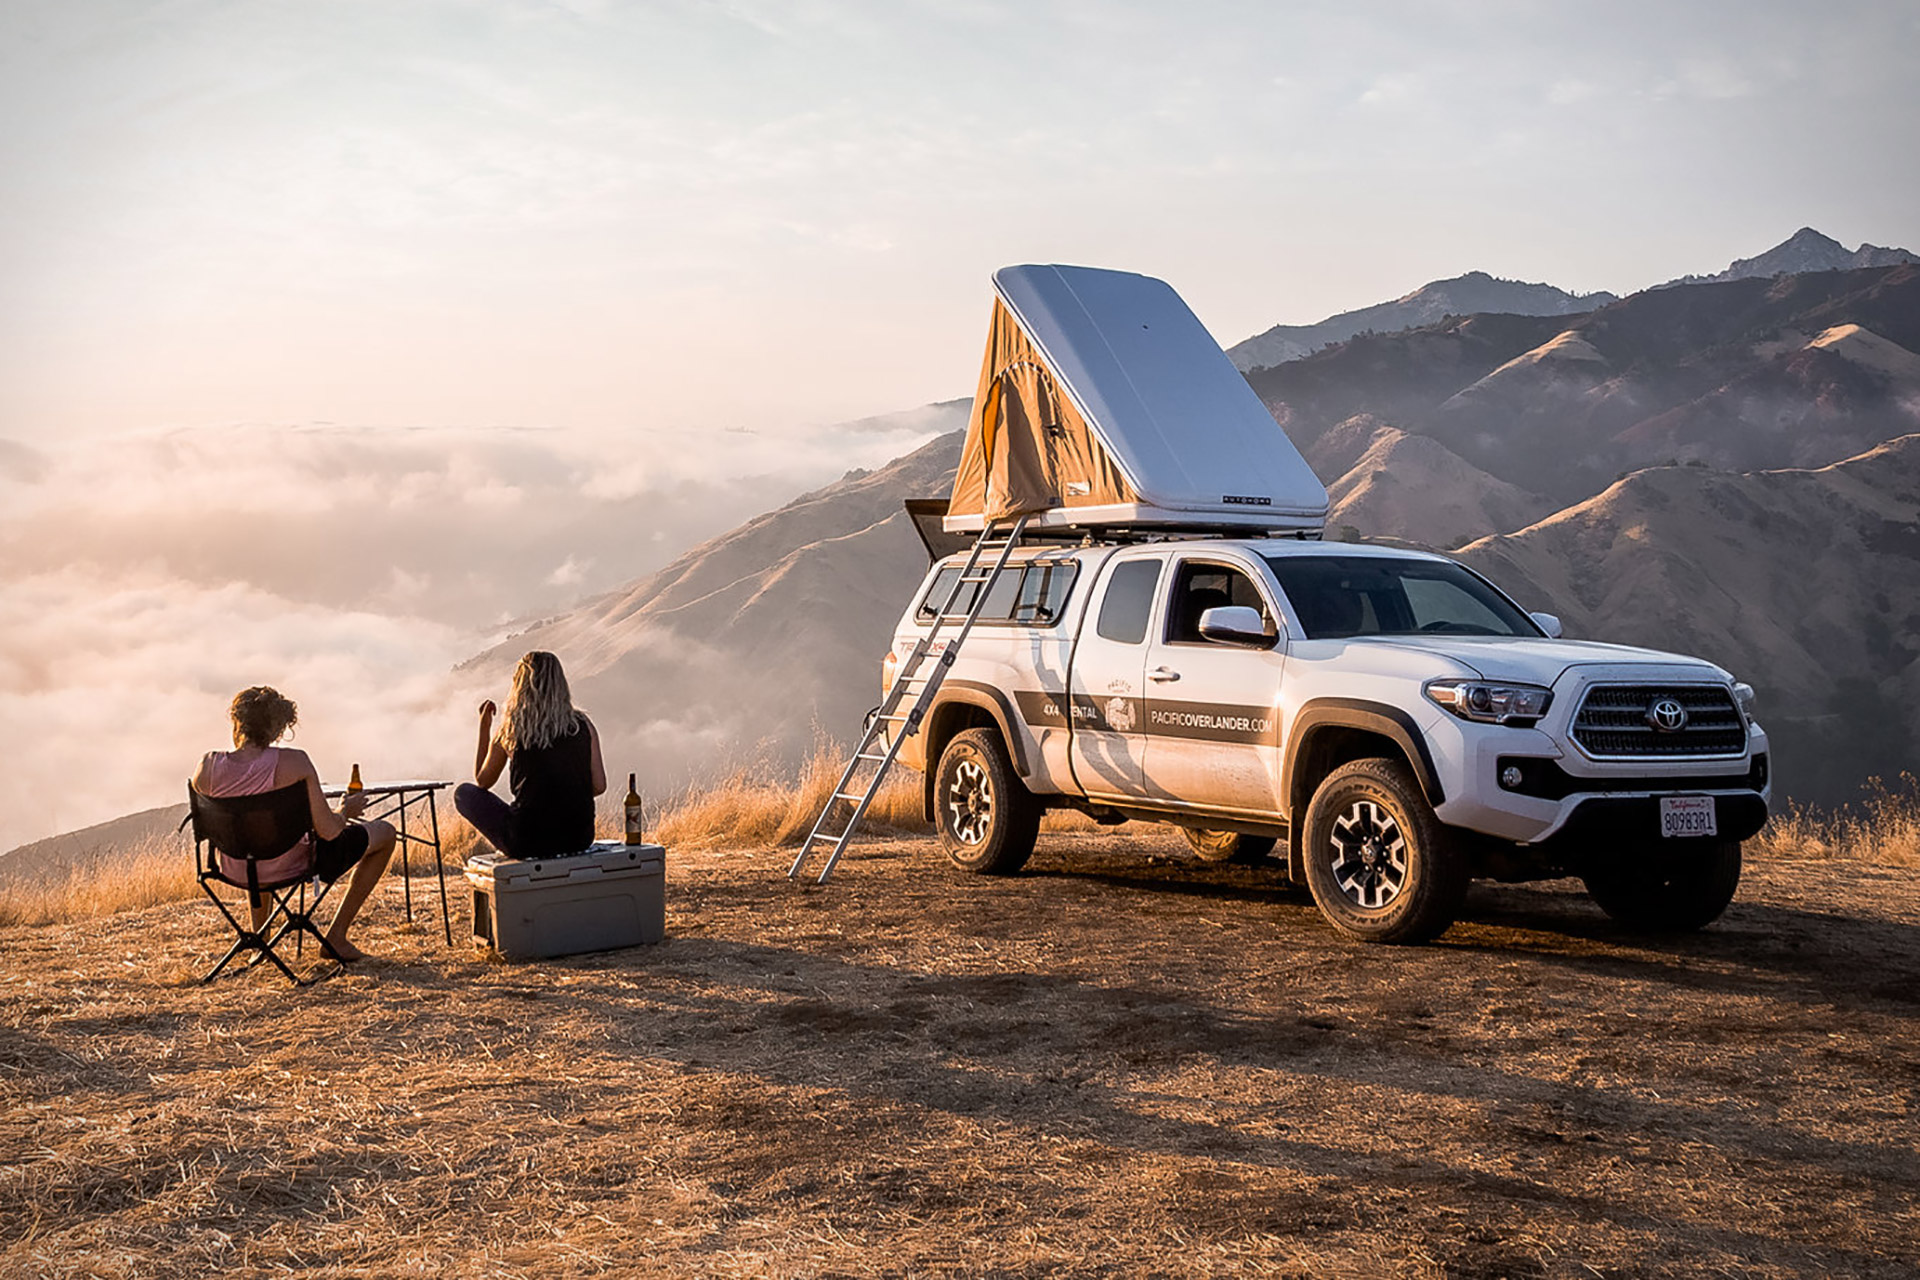 Pacific Overlander Expedition Vehicles